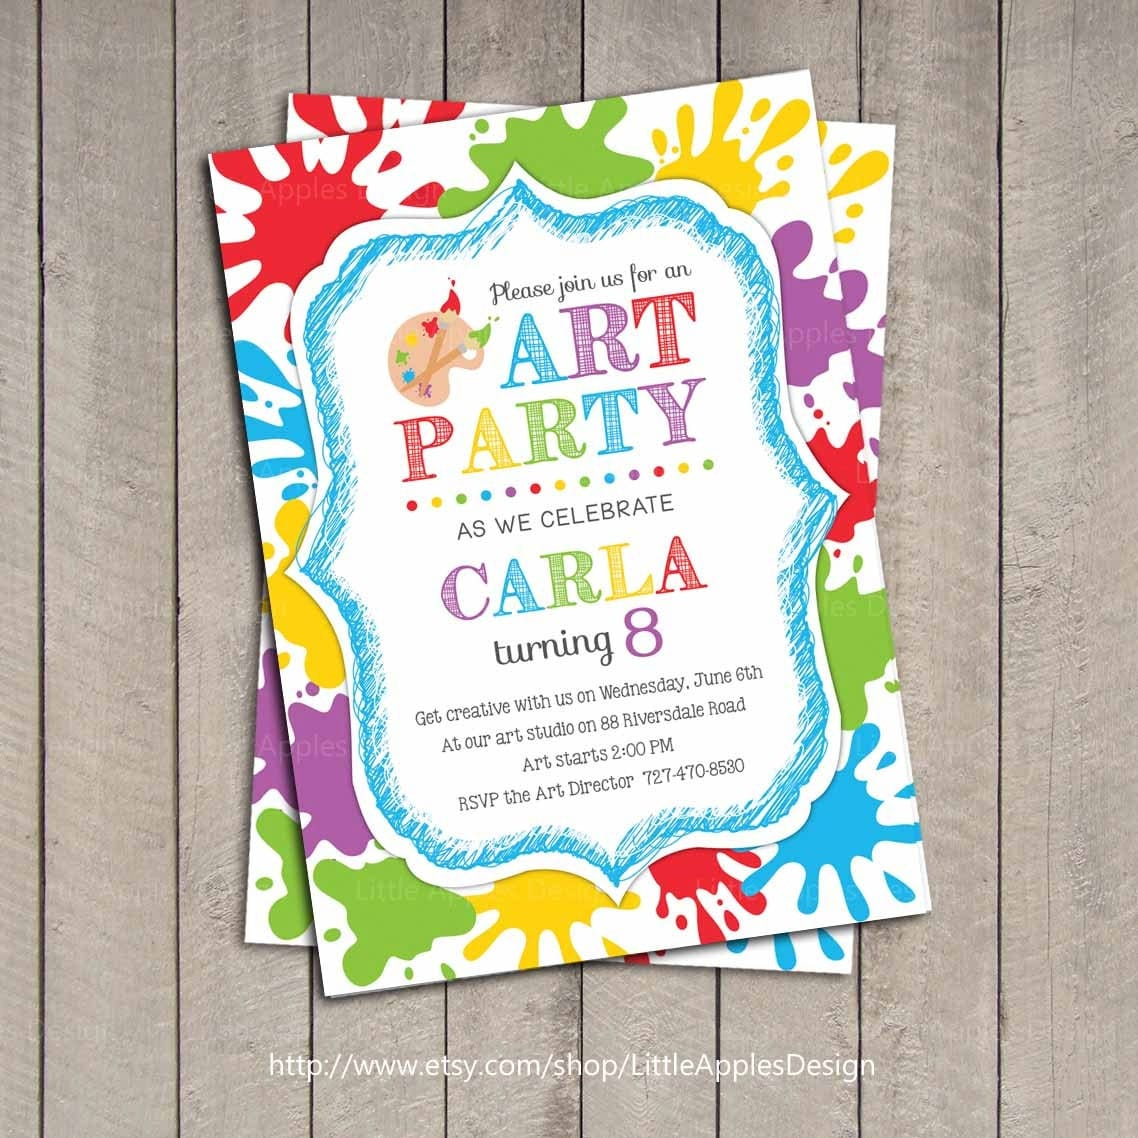 Art Birthday Party Invitations and get inspiration to create nice invitation ideas